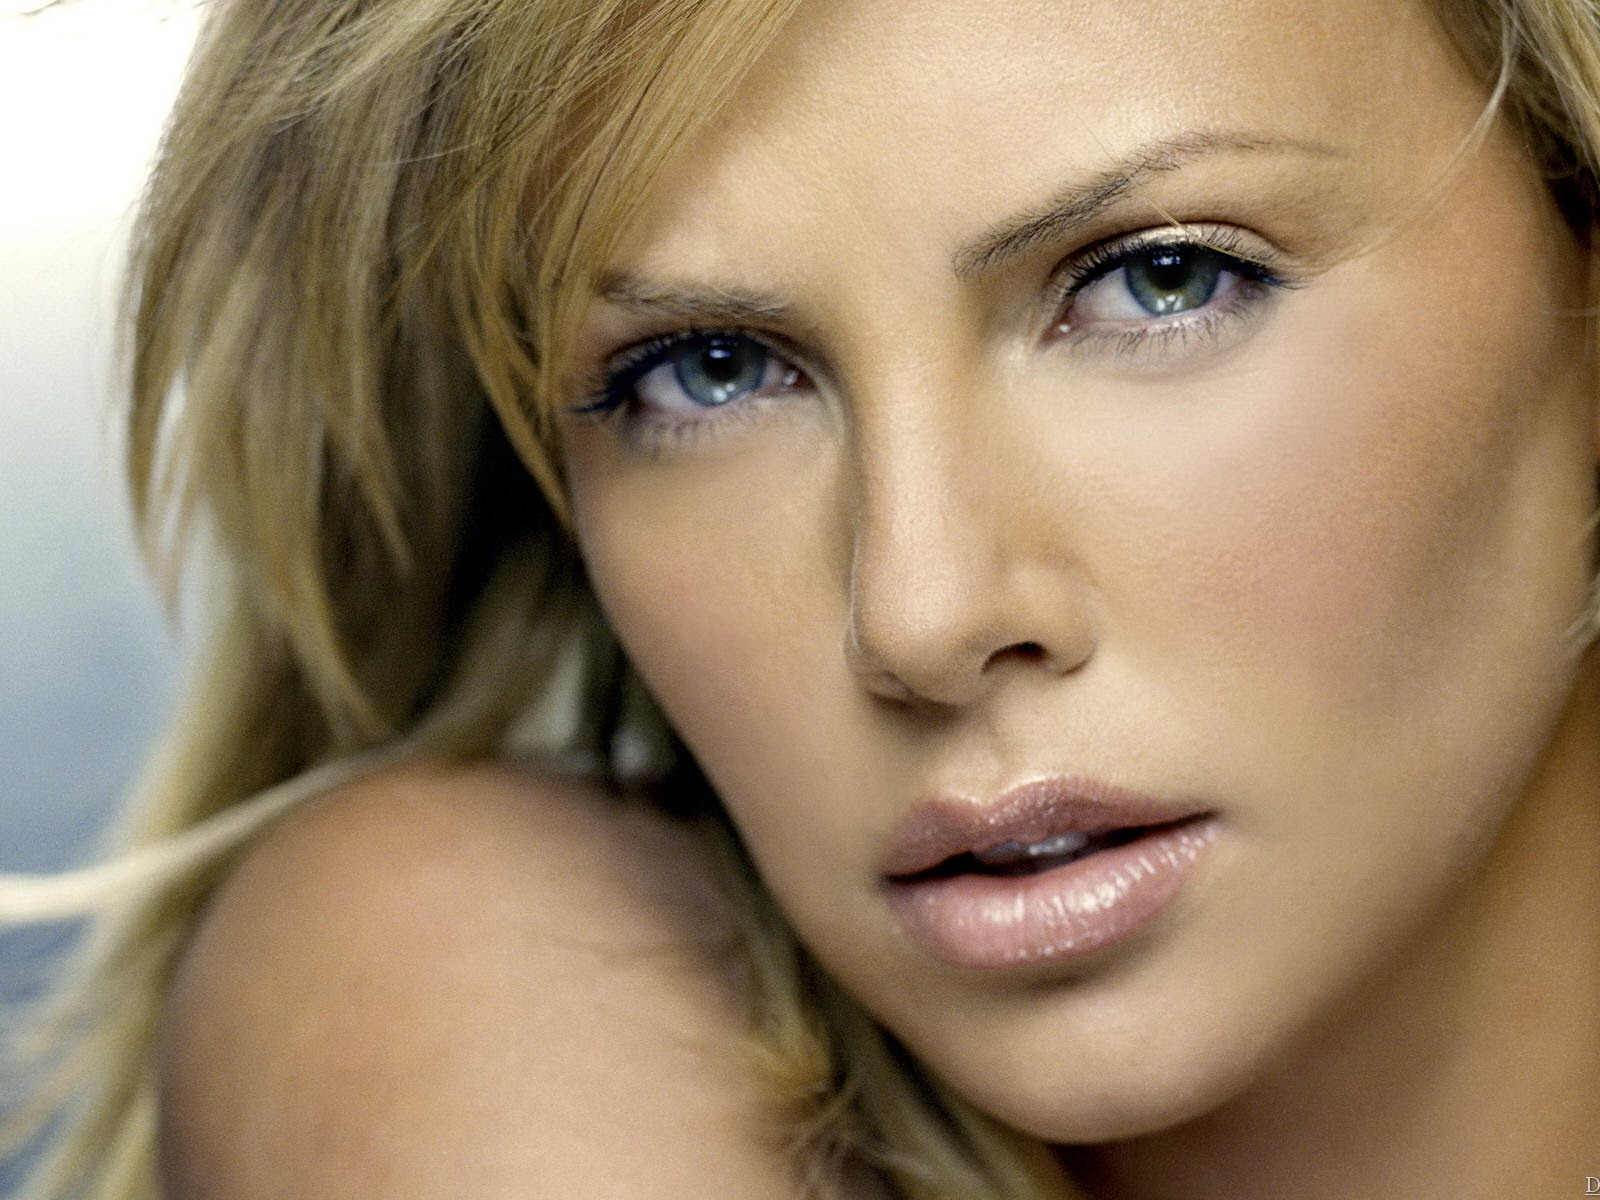 Charlize Theron #029 - 1600x1200 Wallpapers Pictures Photos Images